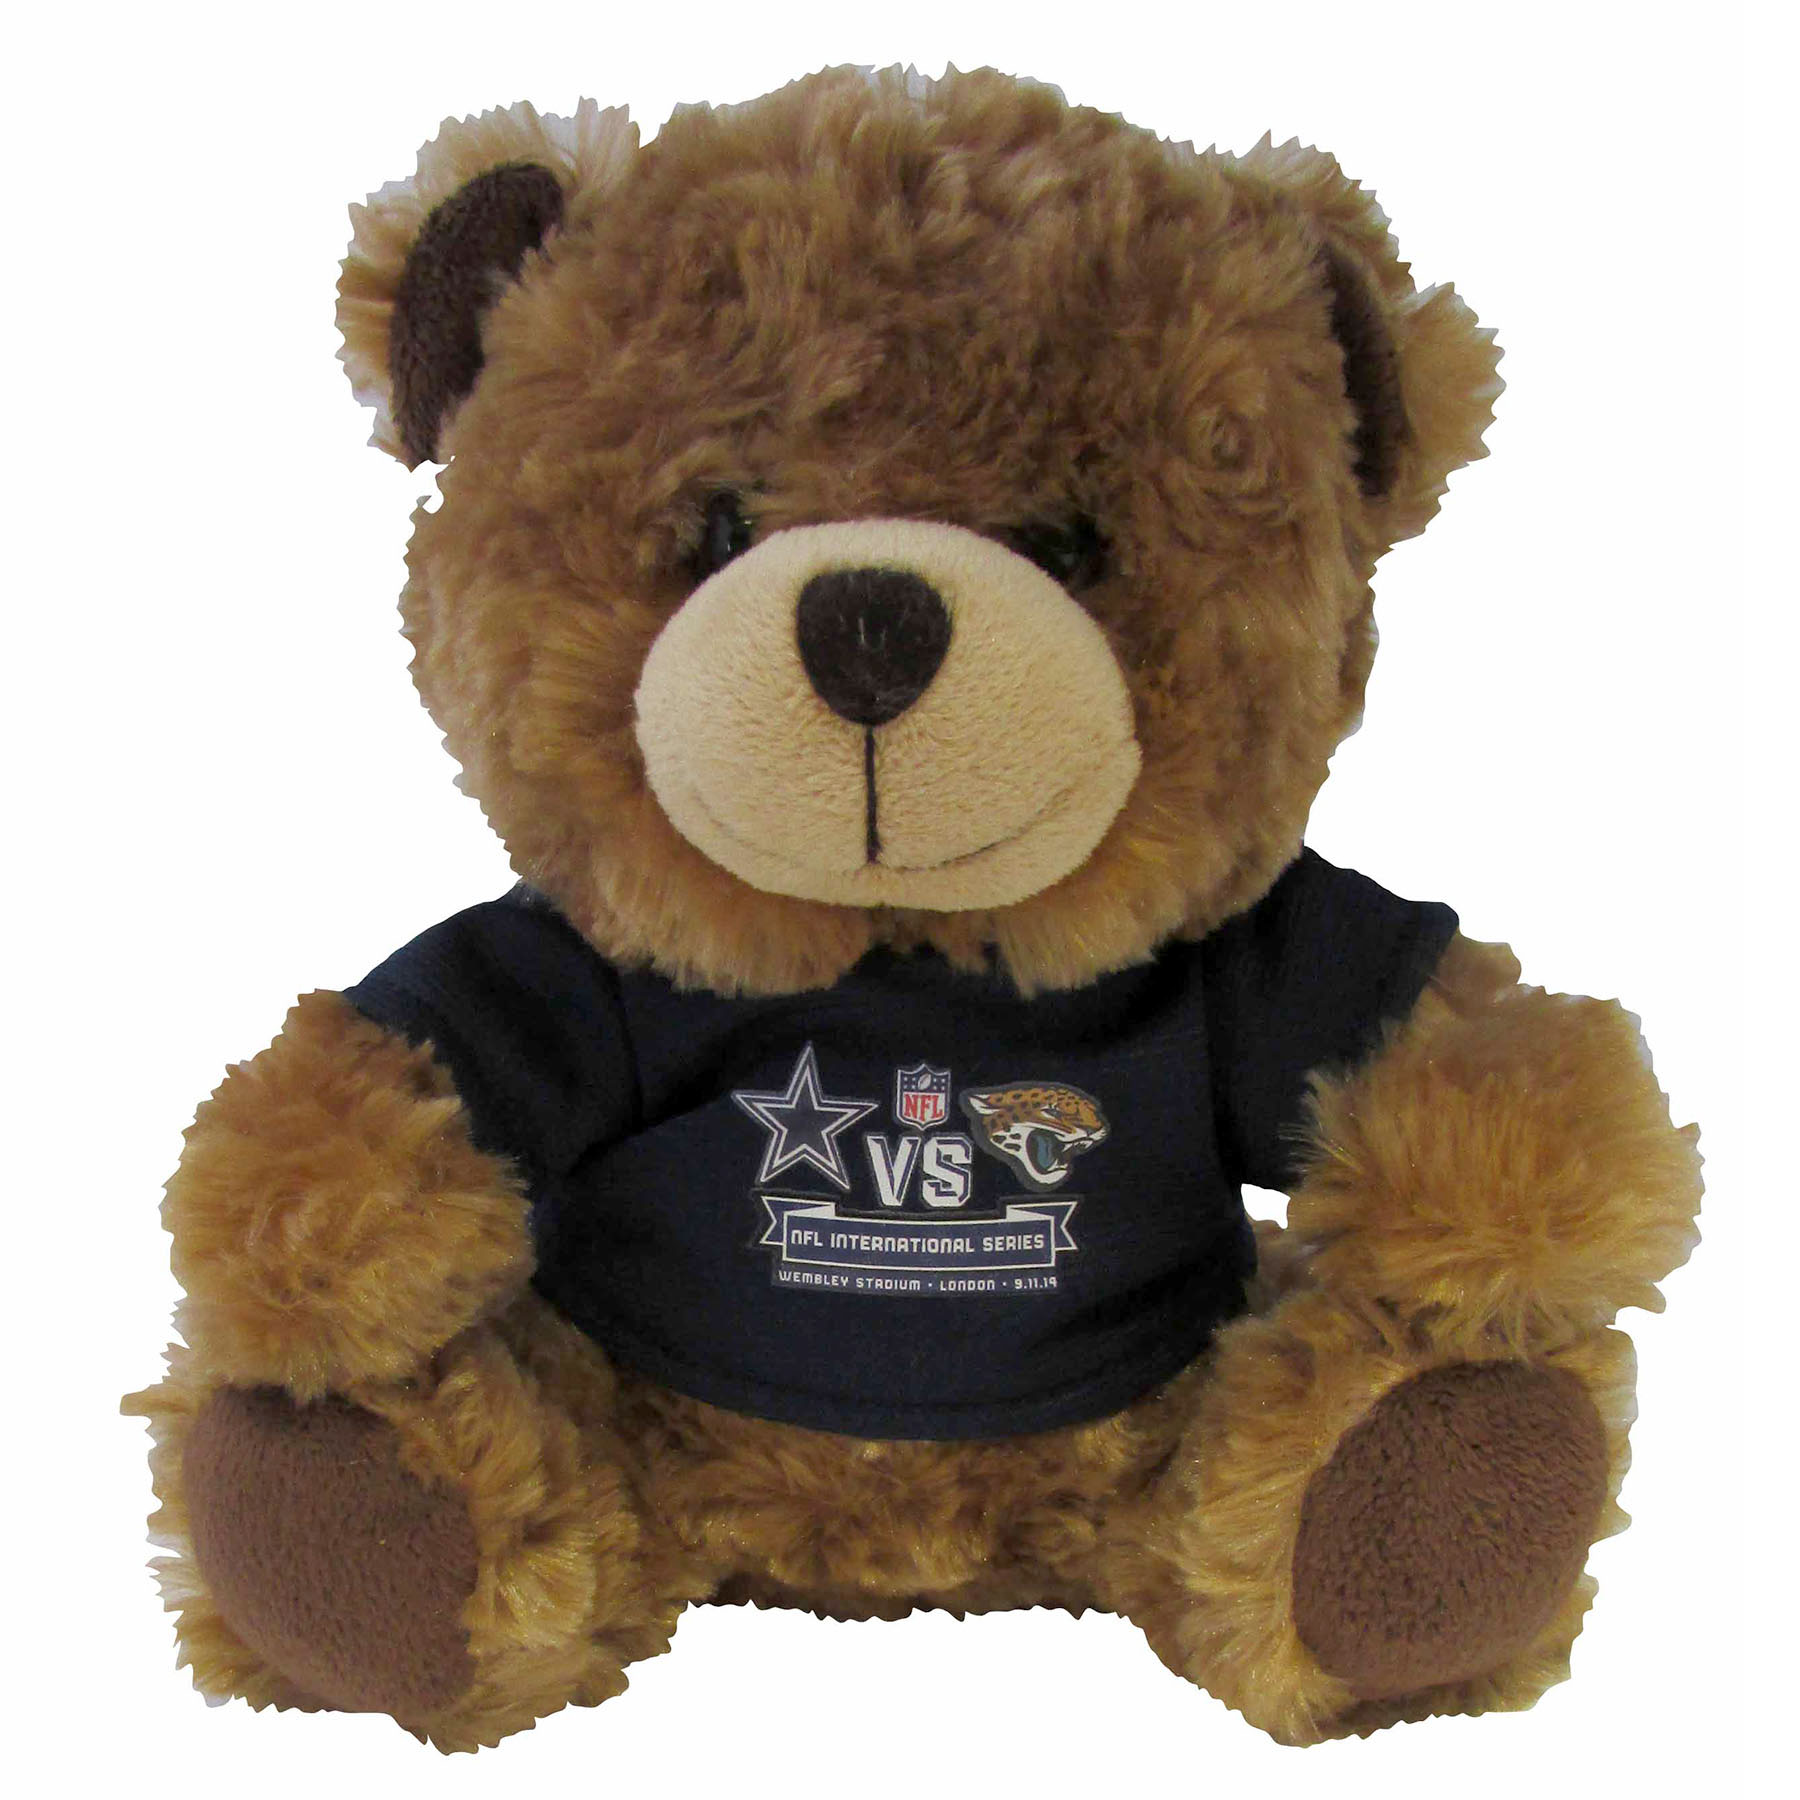 NFL Cowboys Vs Jaguars International Series Game 11 T-Shirt Bear